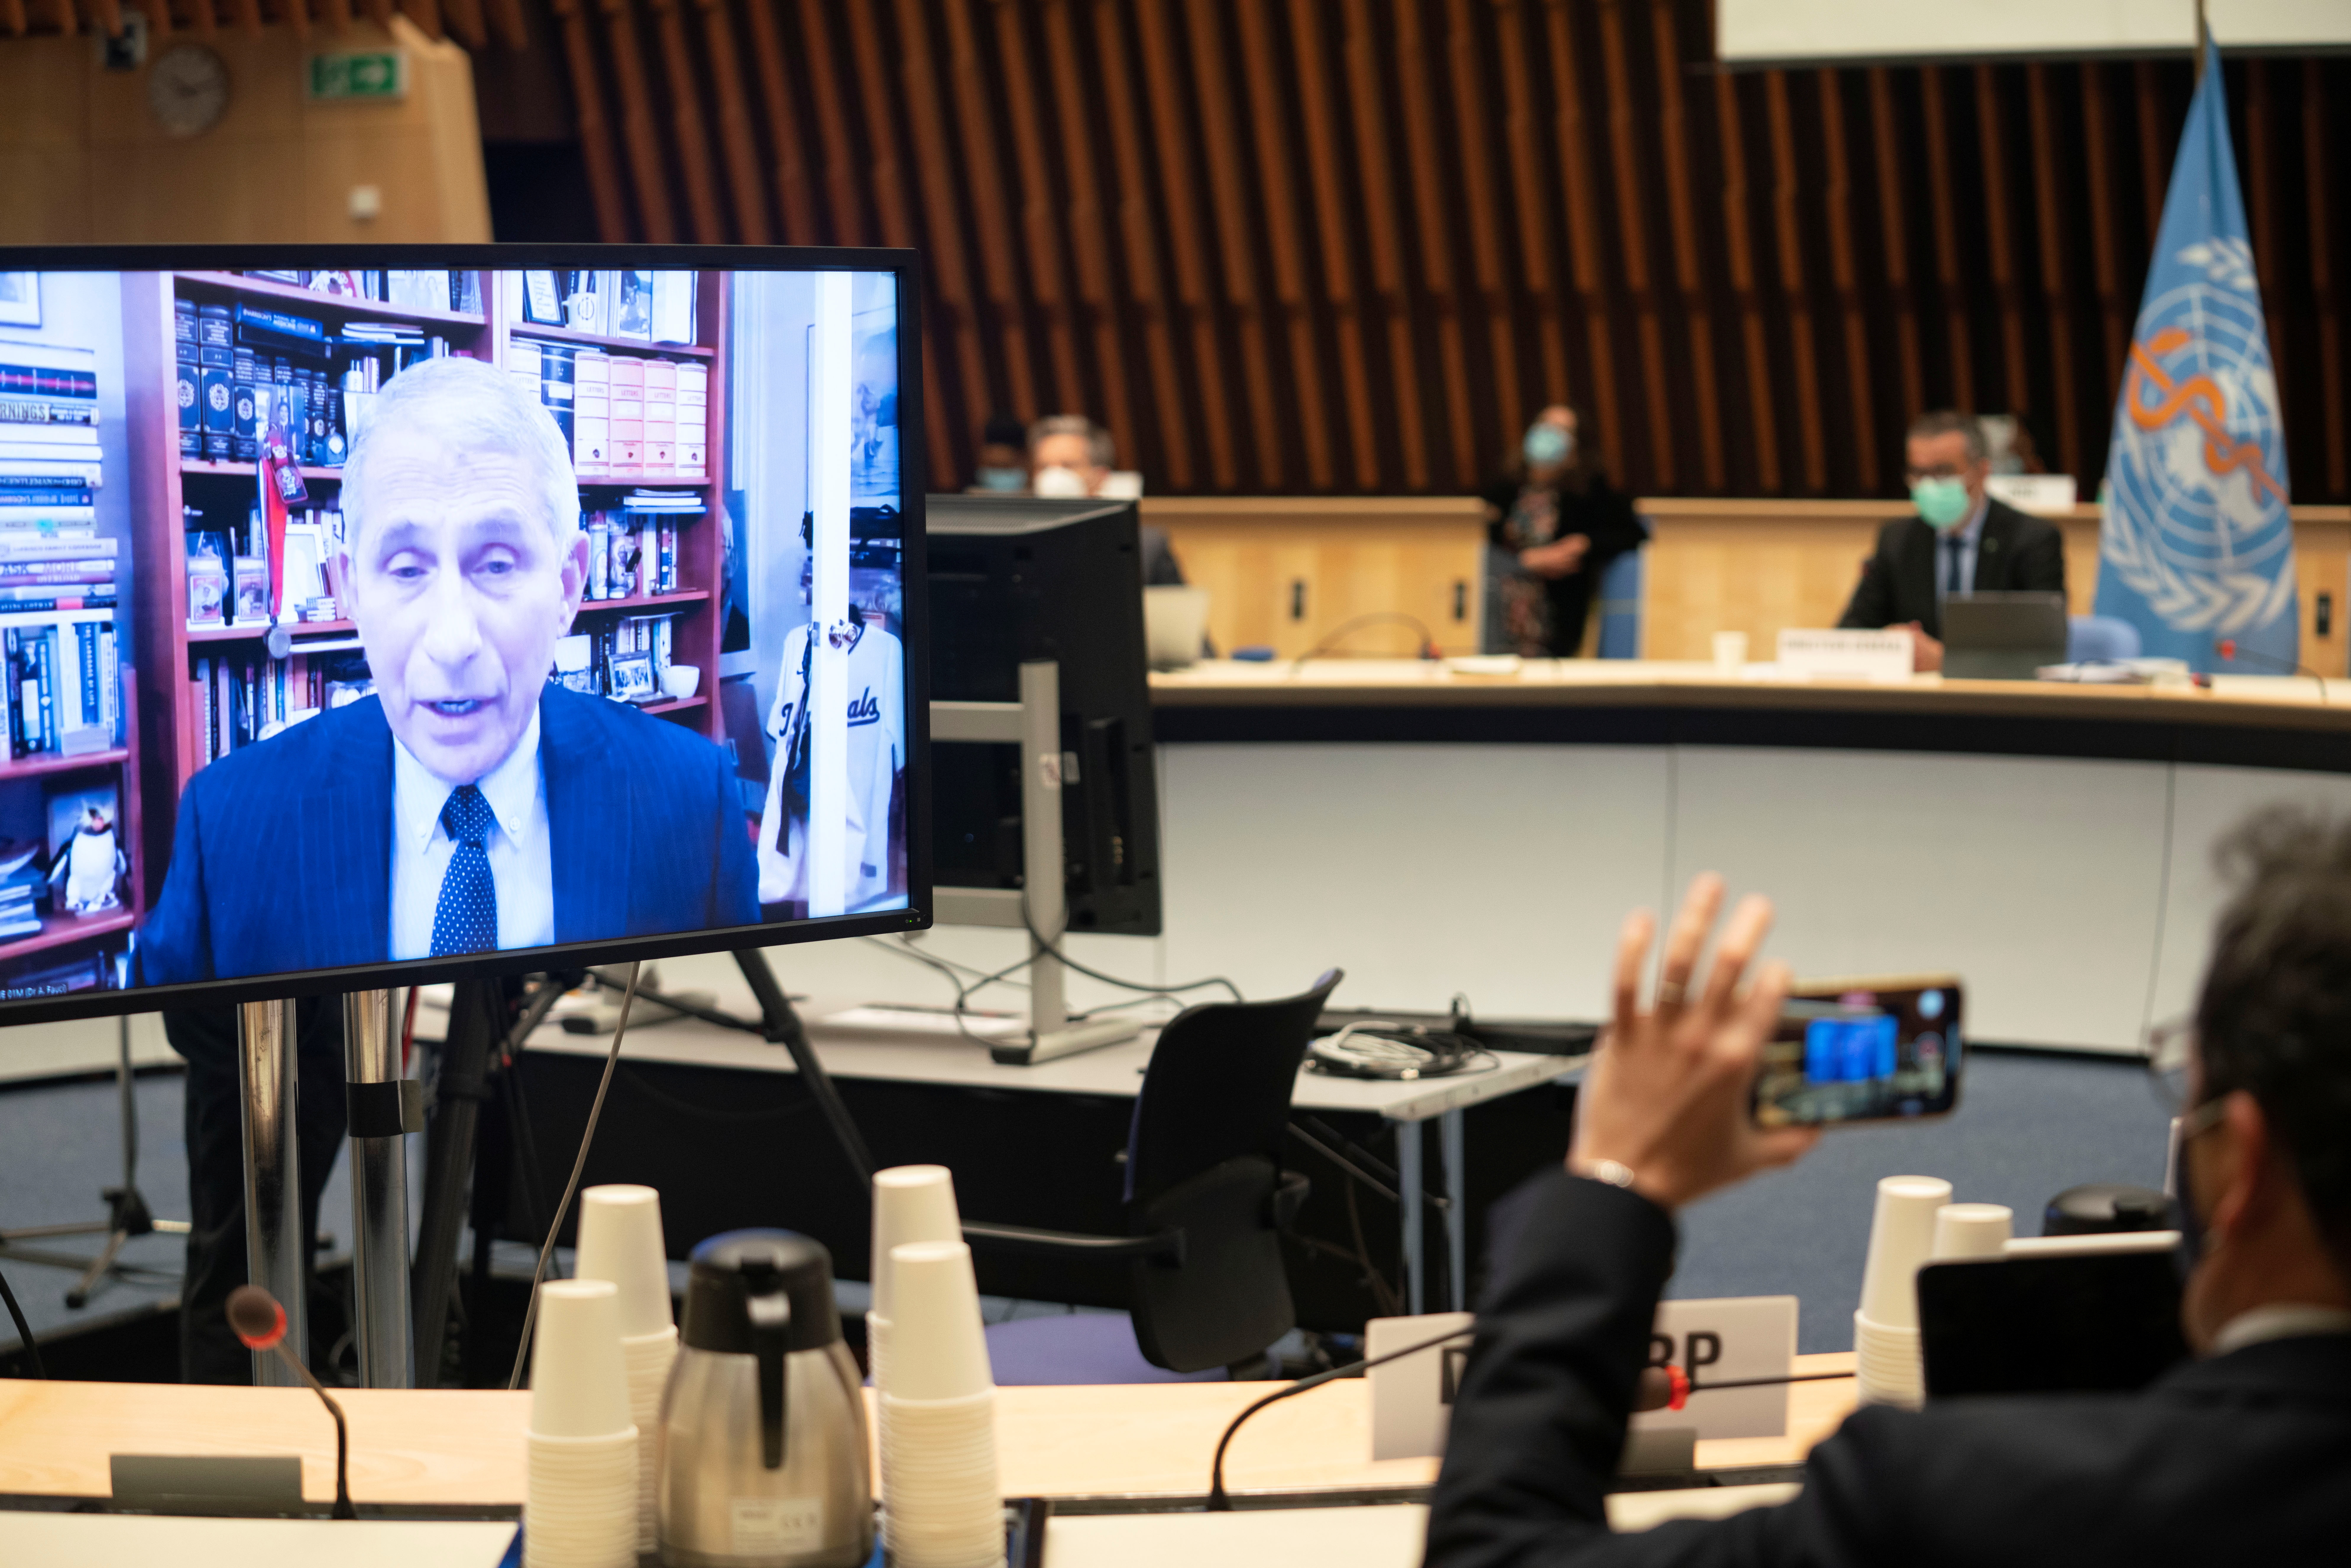 Dr. Anthony Fauci, director of the National Institute of Allergy and Infectious Diseases speaks via video link during the 148th session of the Executive Board on the coronavirus disease (COVID-19) outbreak in Geneva, Switzerland, January 21, 2021.  Christopher Black/WHO/Handout via REUTERS